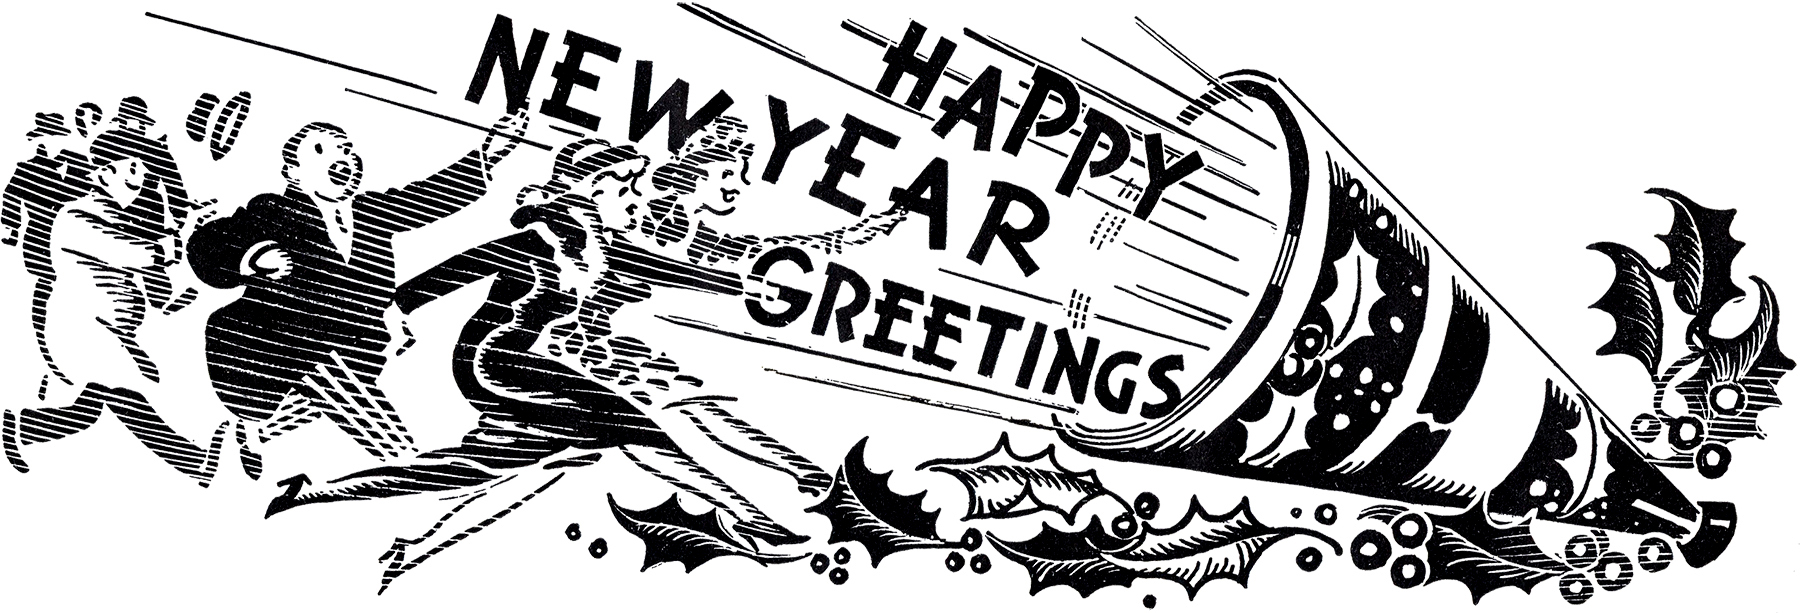 Vintage new year clipart banner royalty free 10 Black and White New Year Clipart - The Graphics Fairy banner royalty free